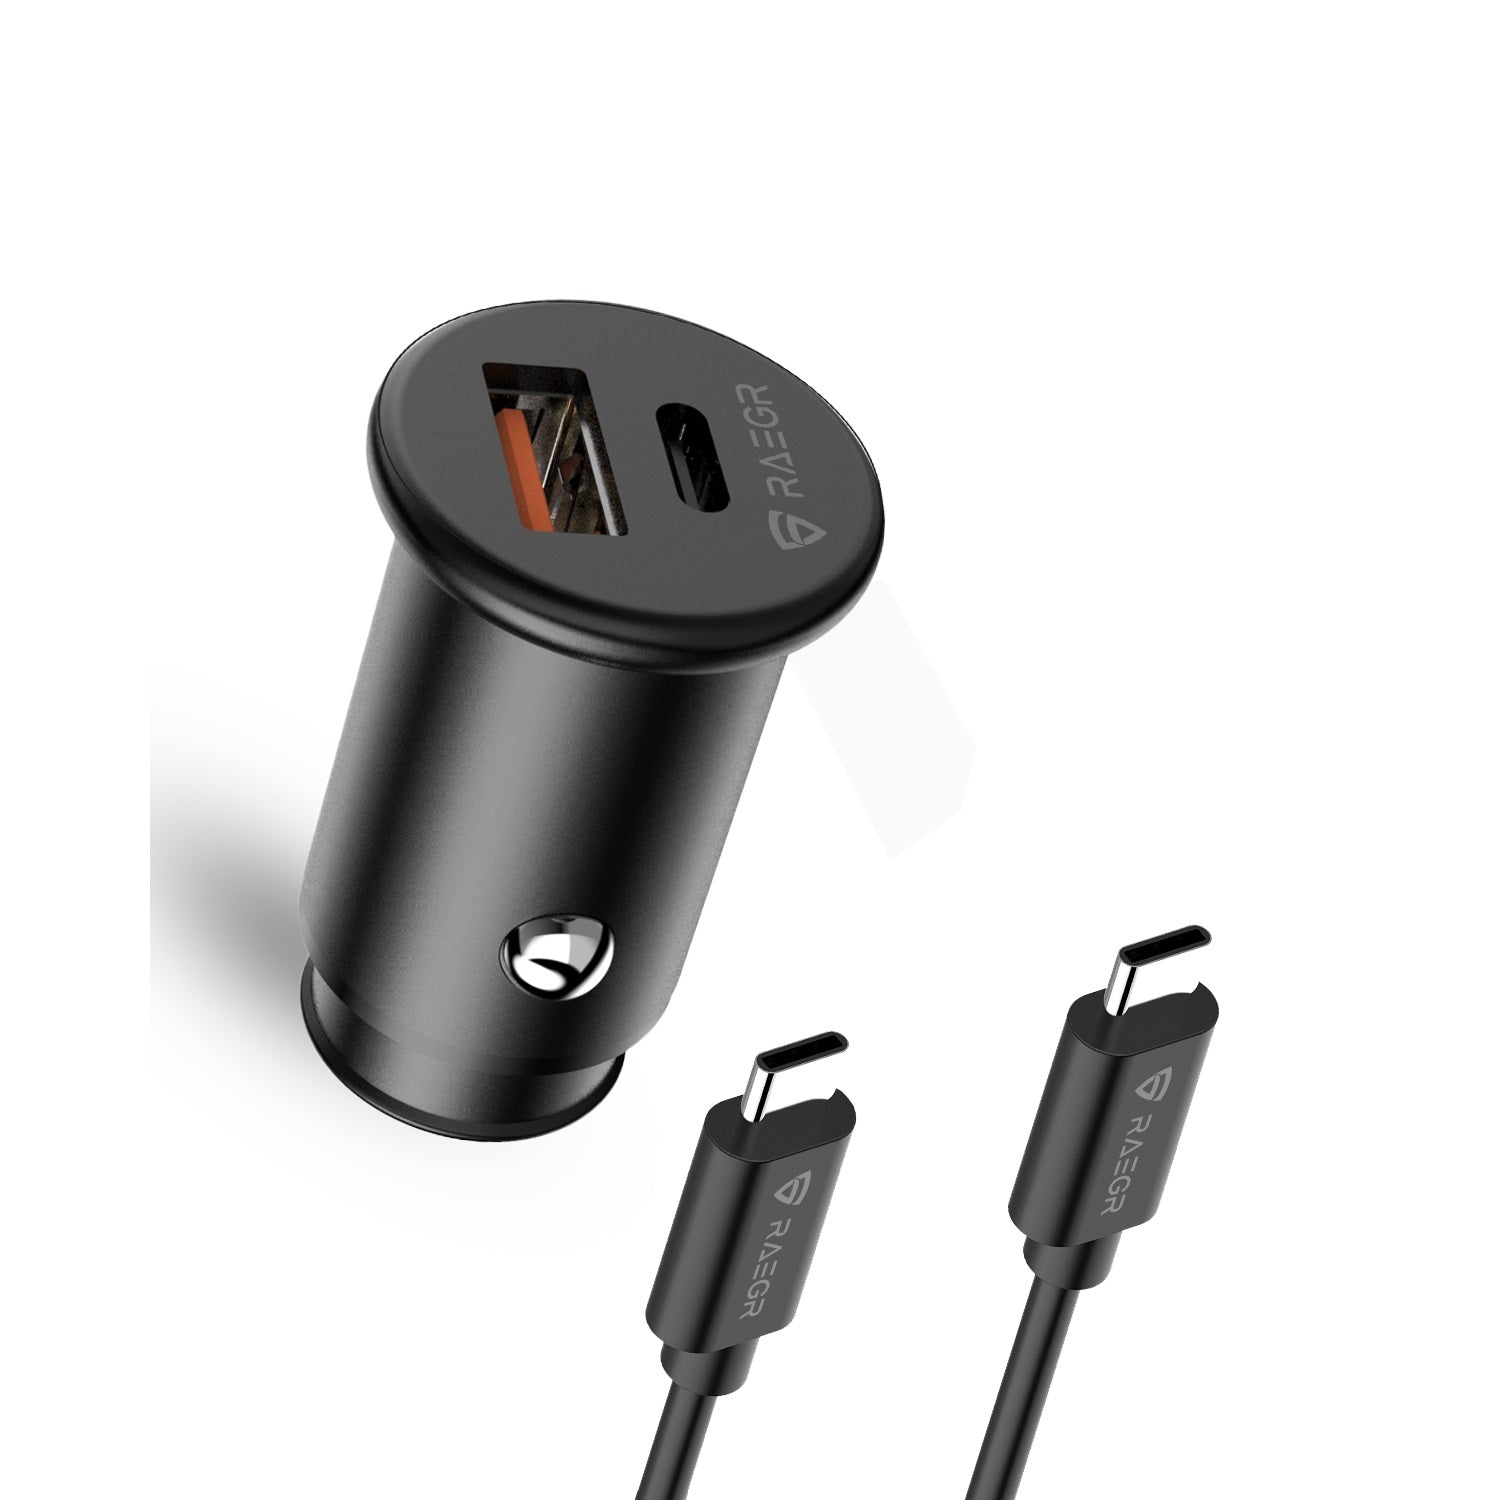 RAEGR RapidLink 400 USB+C Type Car Charger with 20W PD & 18W QC 3.0 Dual Port 3.0 Dual Port Fast Car Adapter